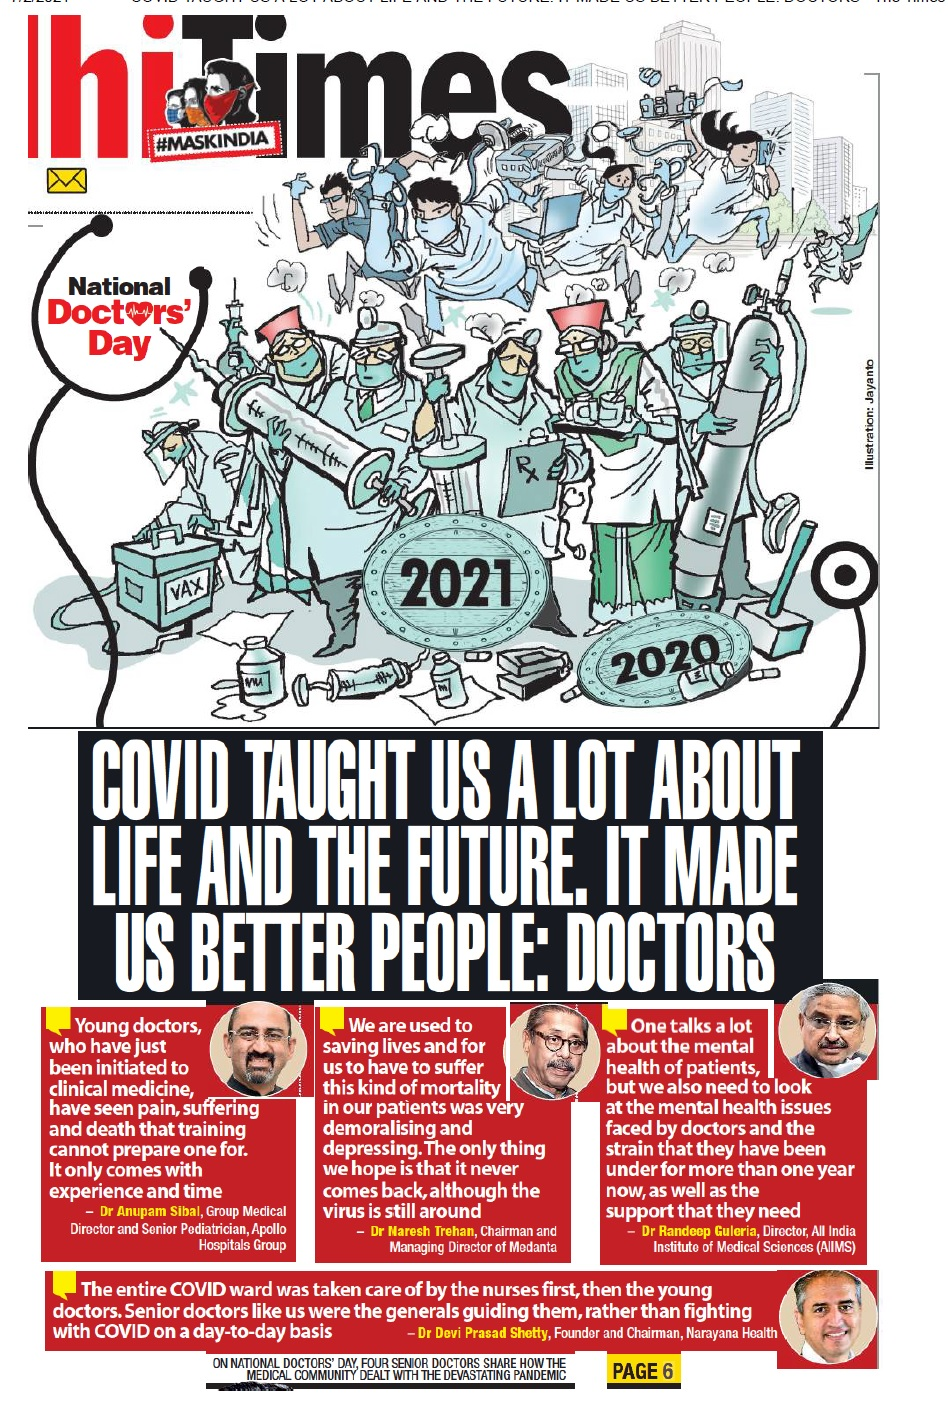 Covid taught us a lot about life and the future. It made us better people: Doctors